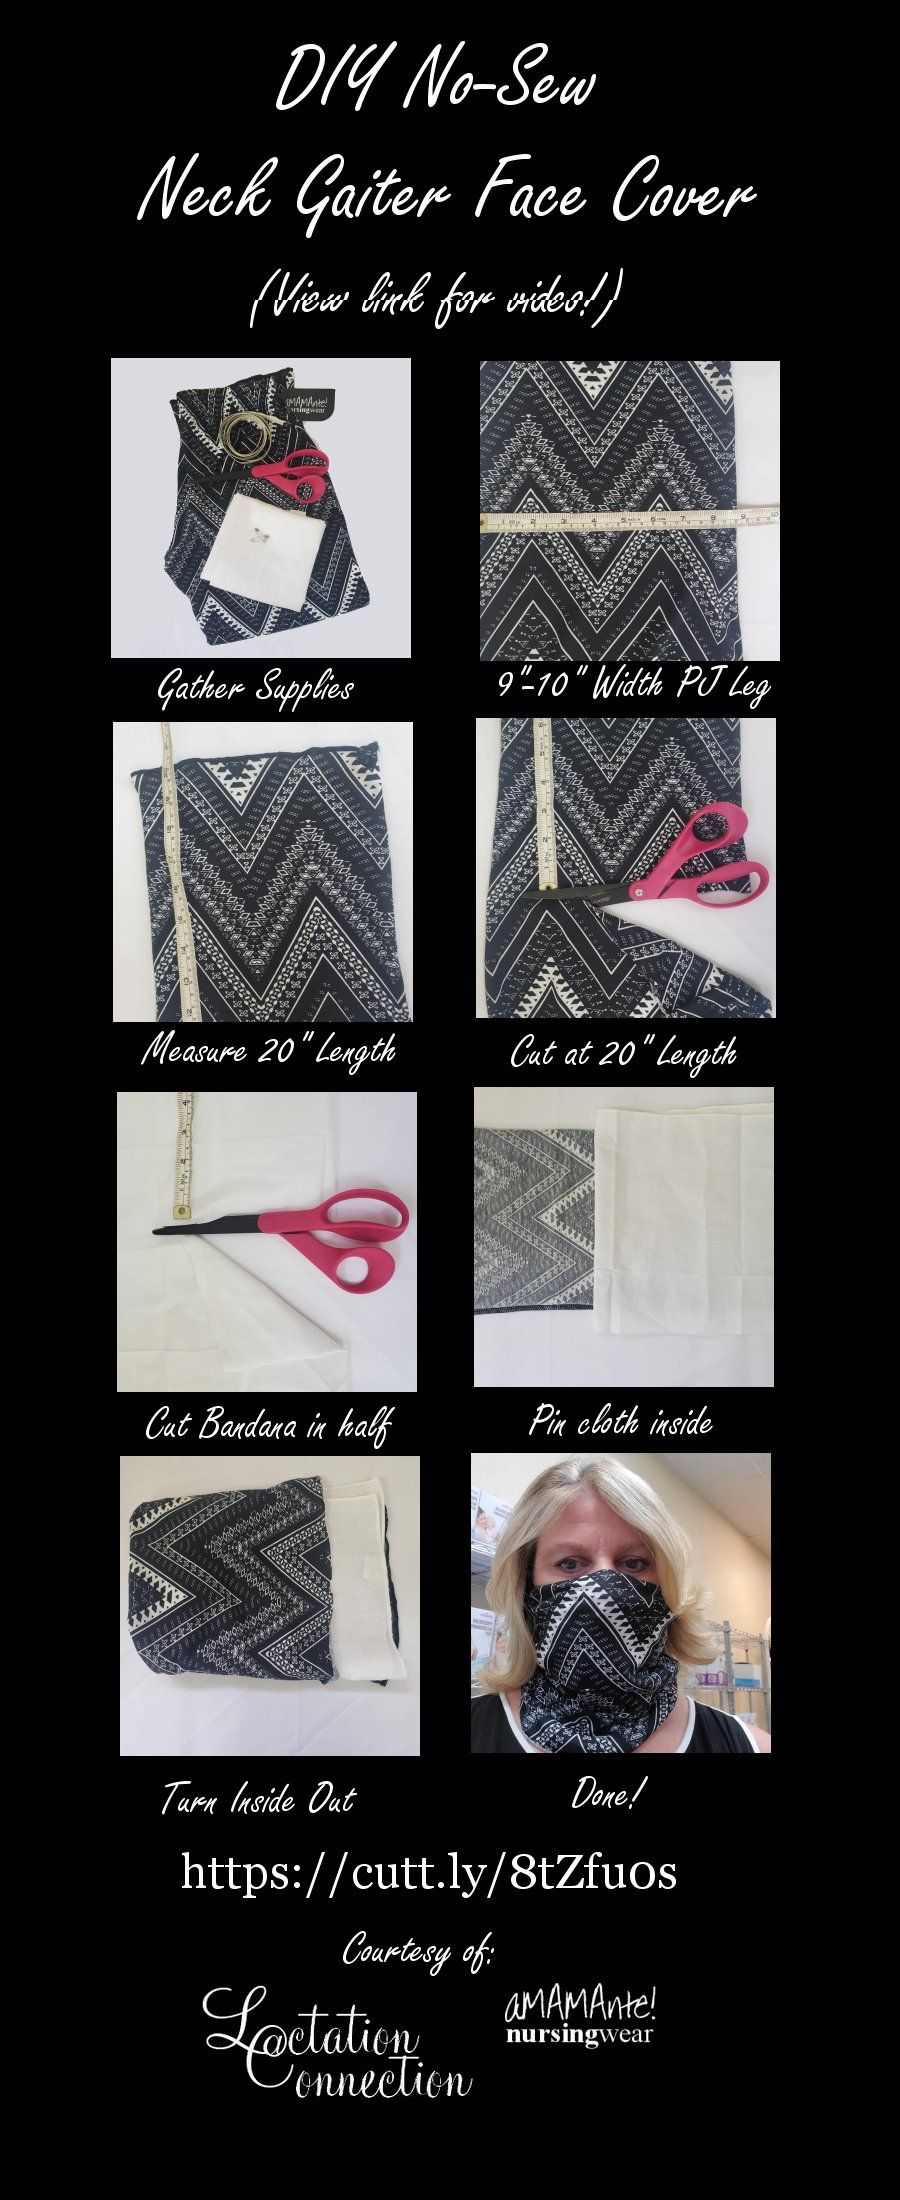 Pin On Diy Face Cover And Supplies For Moms